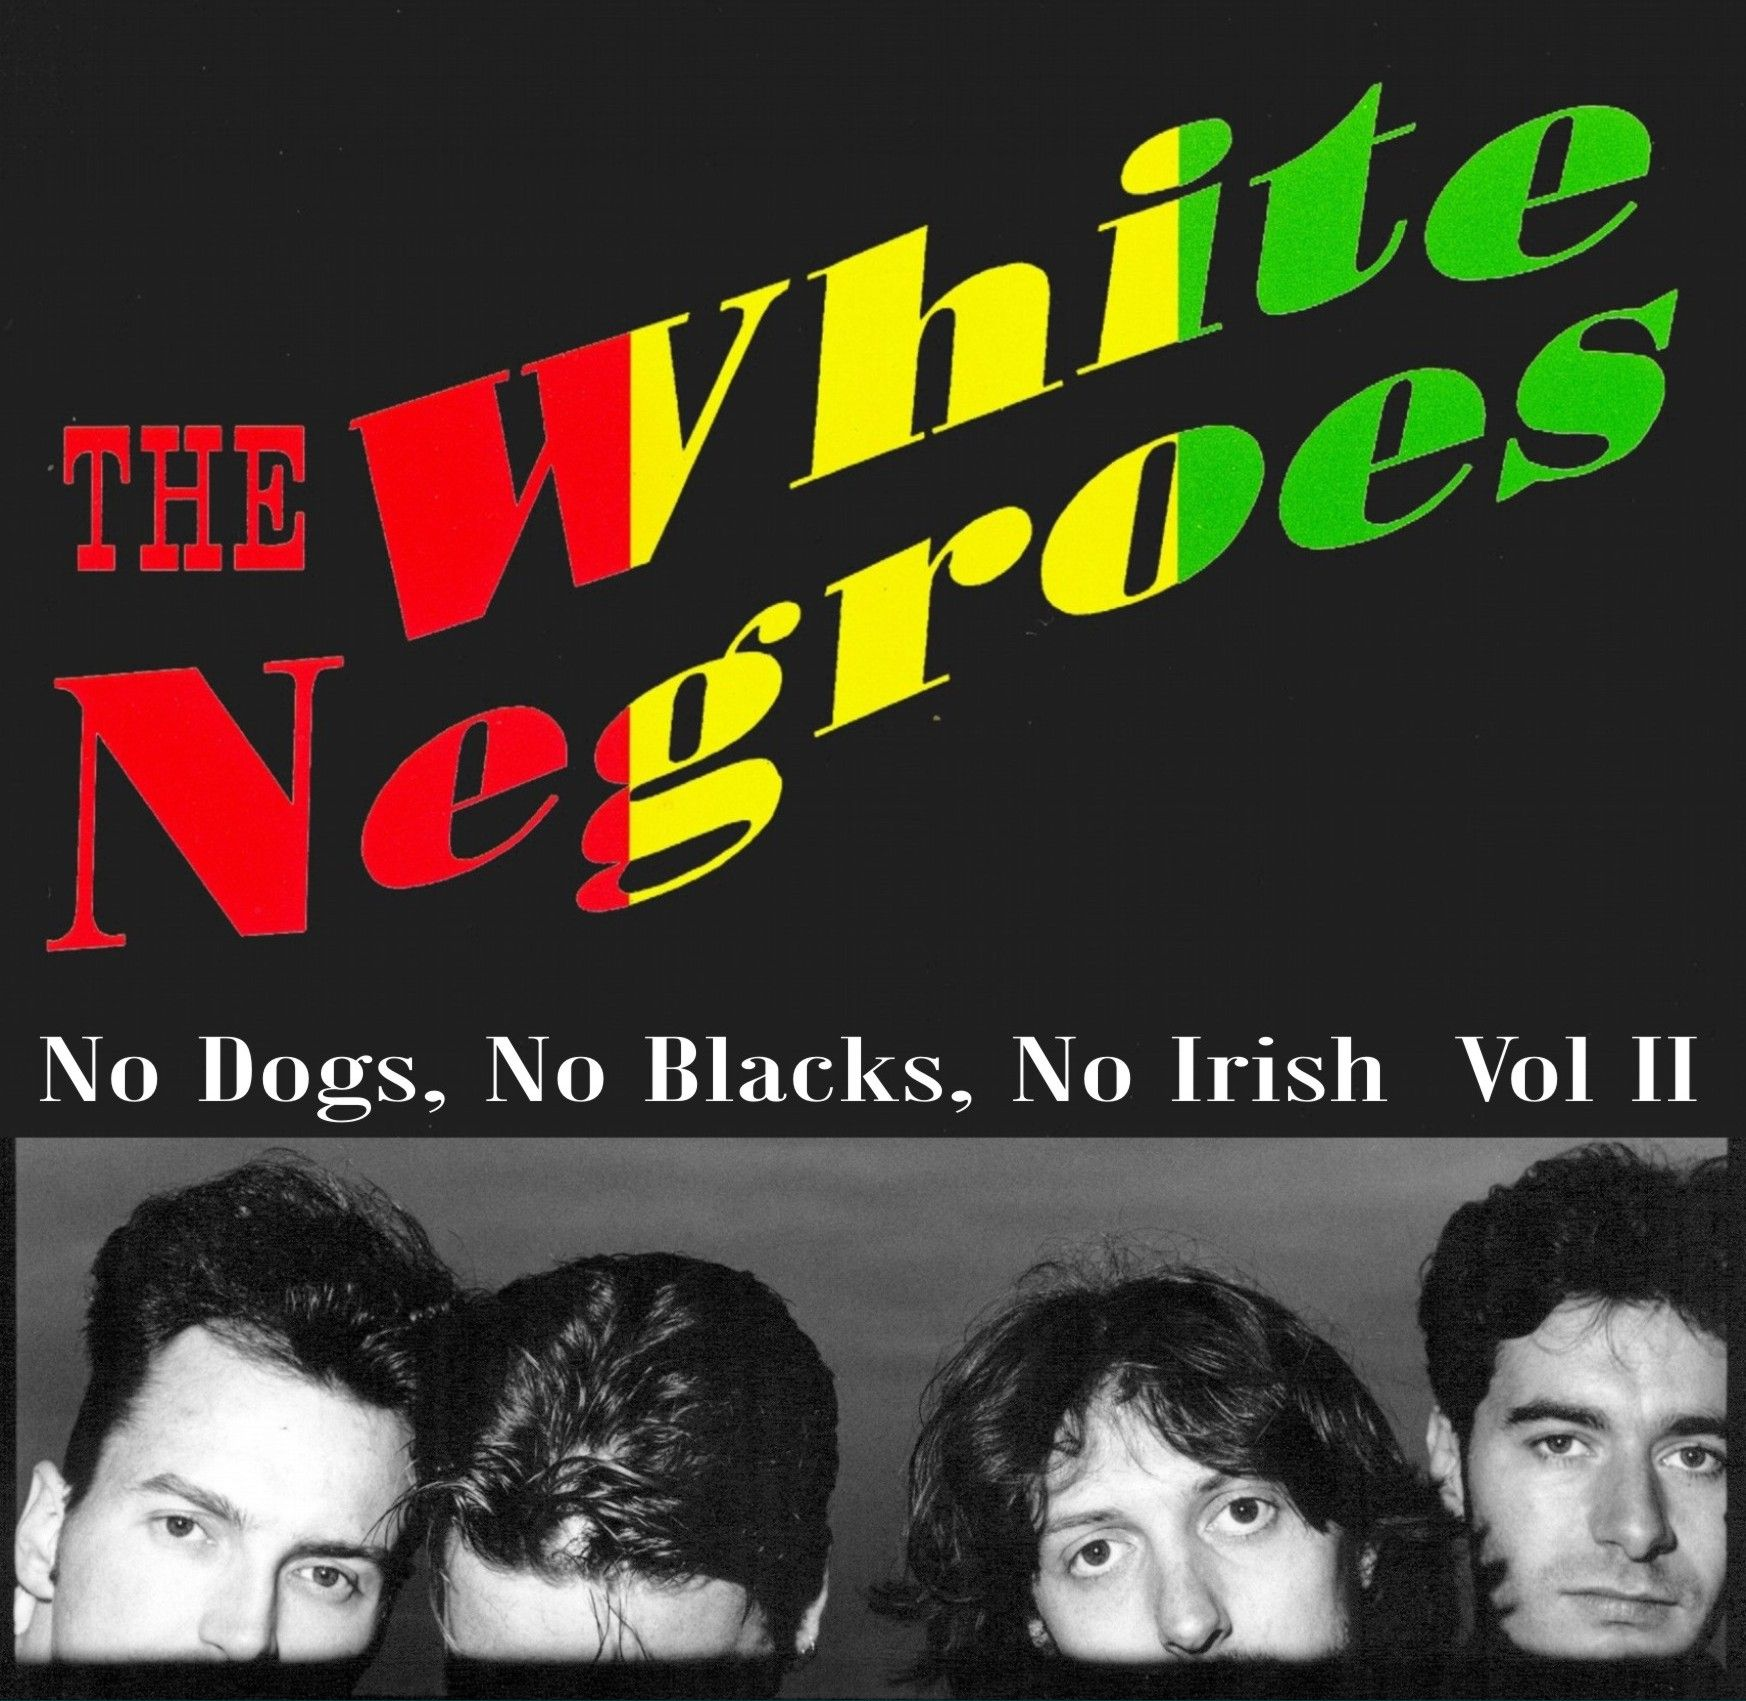 No Dogs, No Blacks, No Irish Volume 2